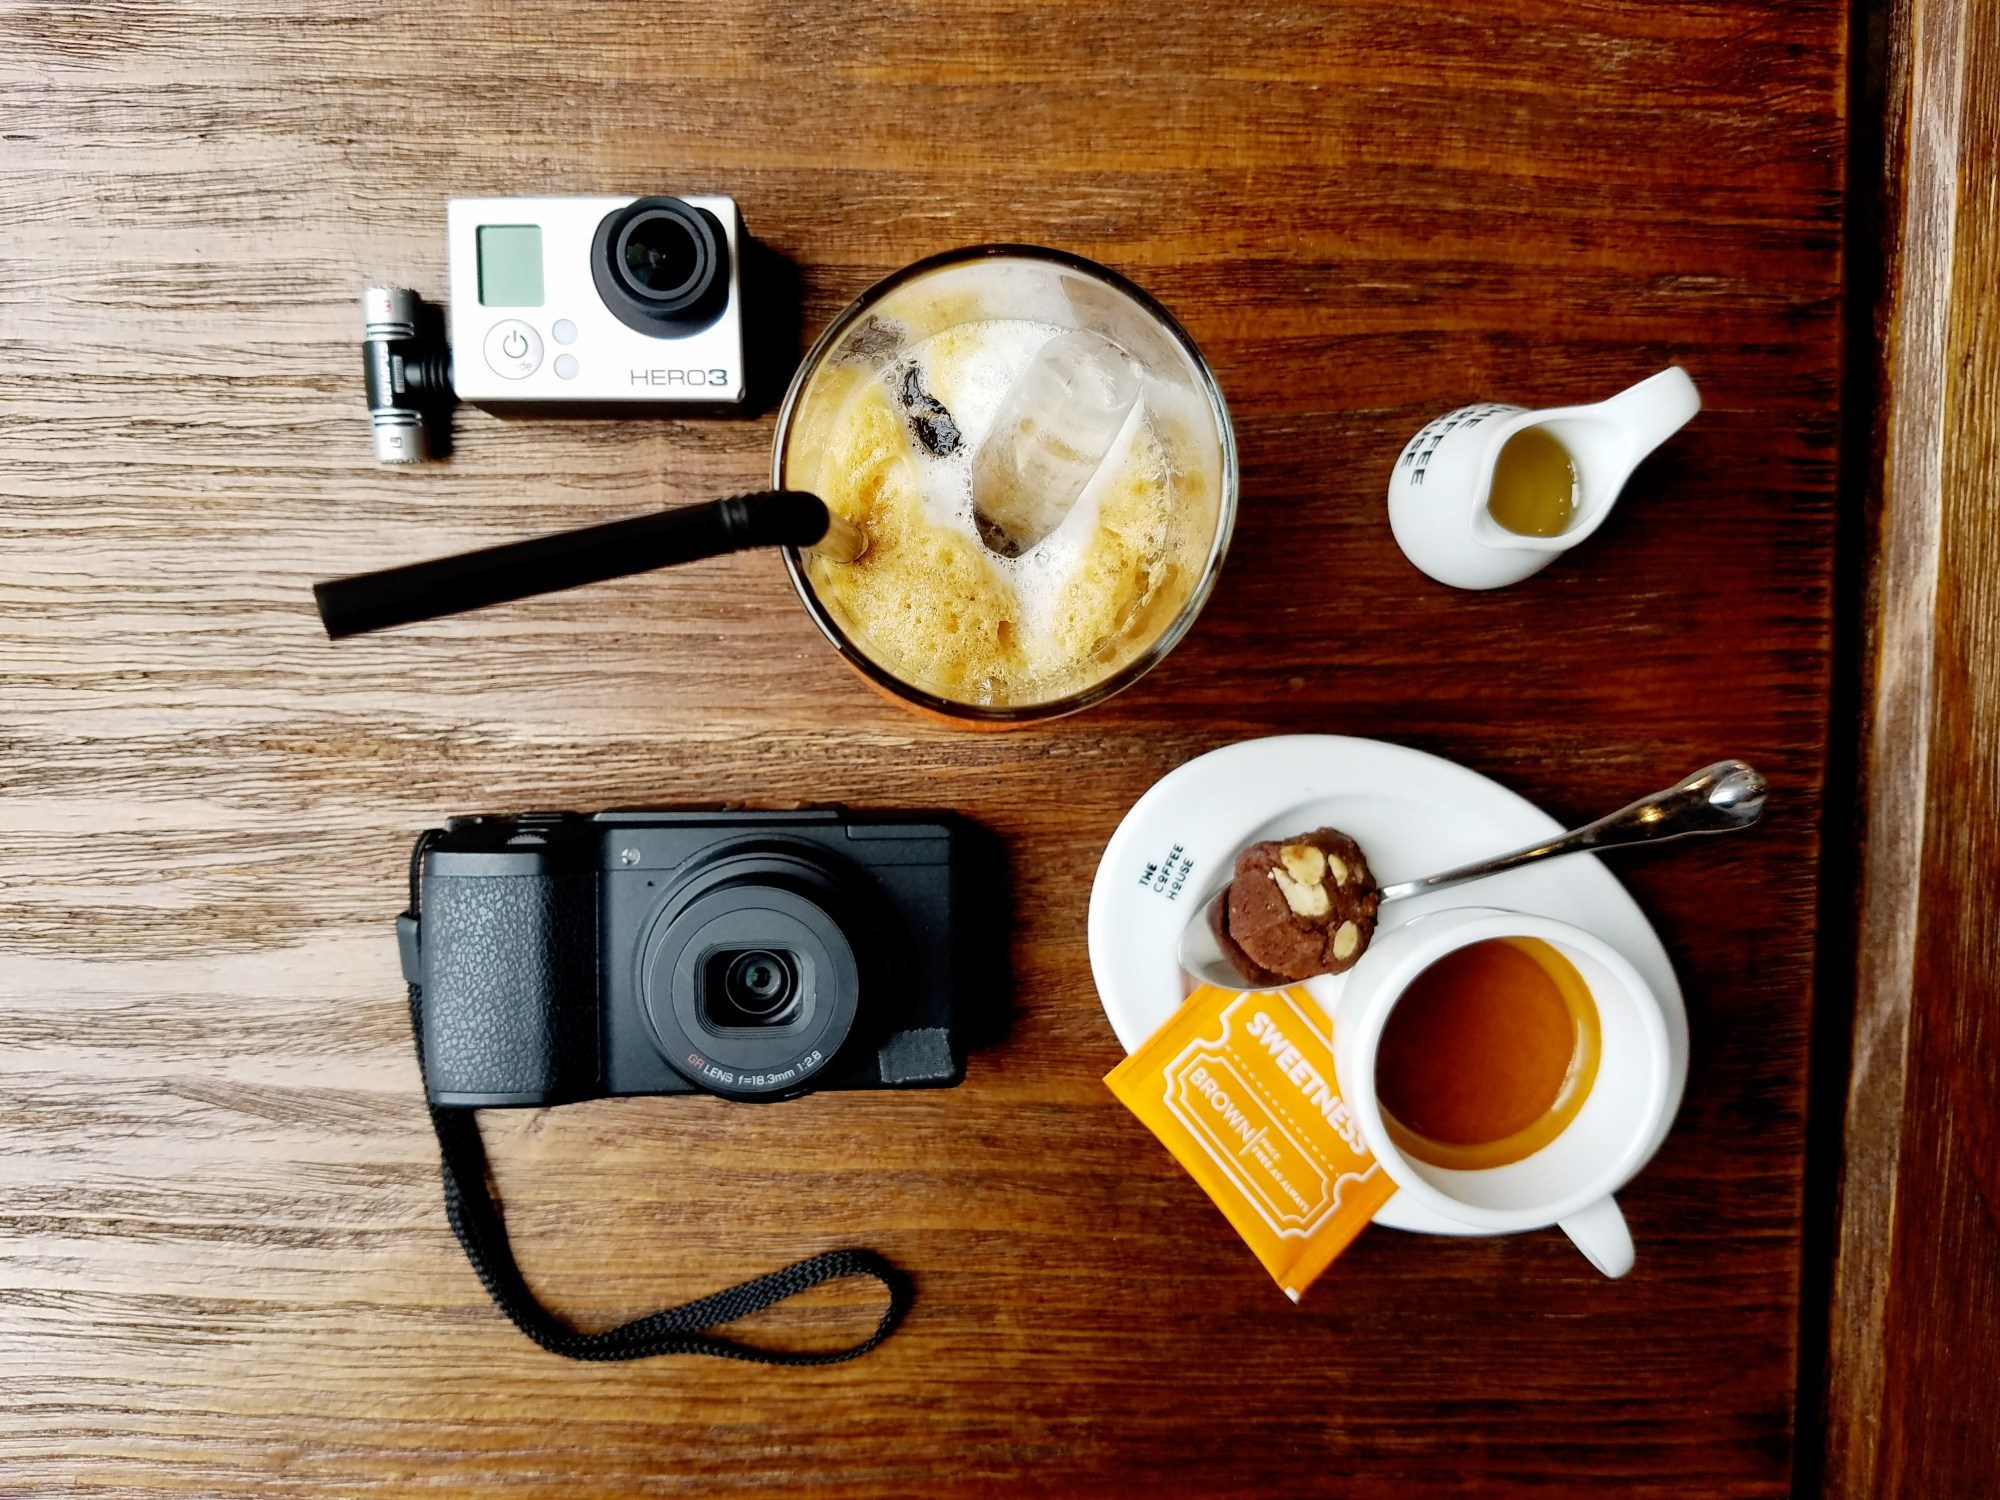 Tools of Hanoi: Ricoh GR II, GoPro Hero 3, and (lots of) coffee